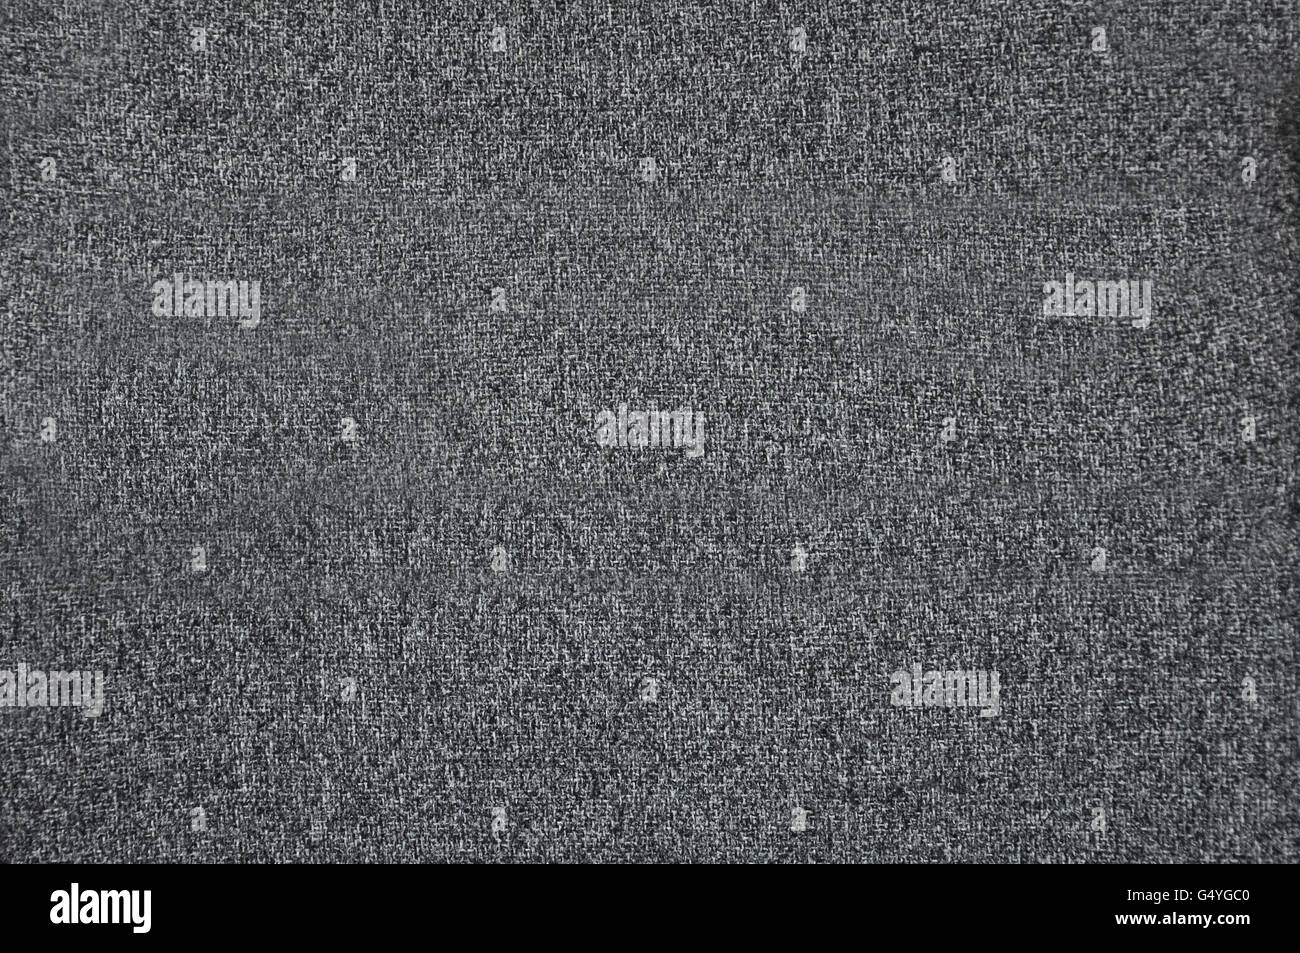 Stock Photo - Grey fabric texture may be used as background - Stock Image